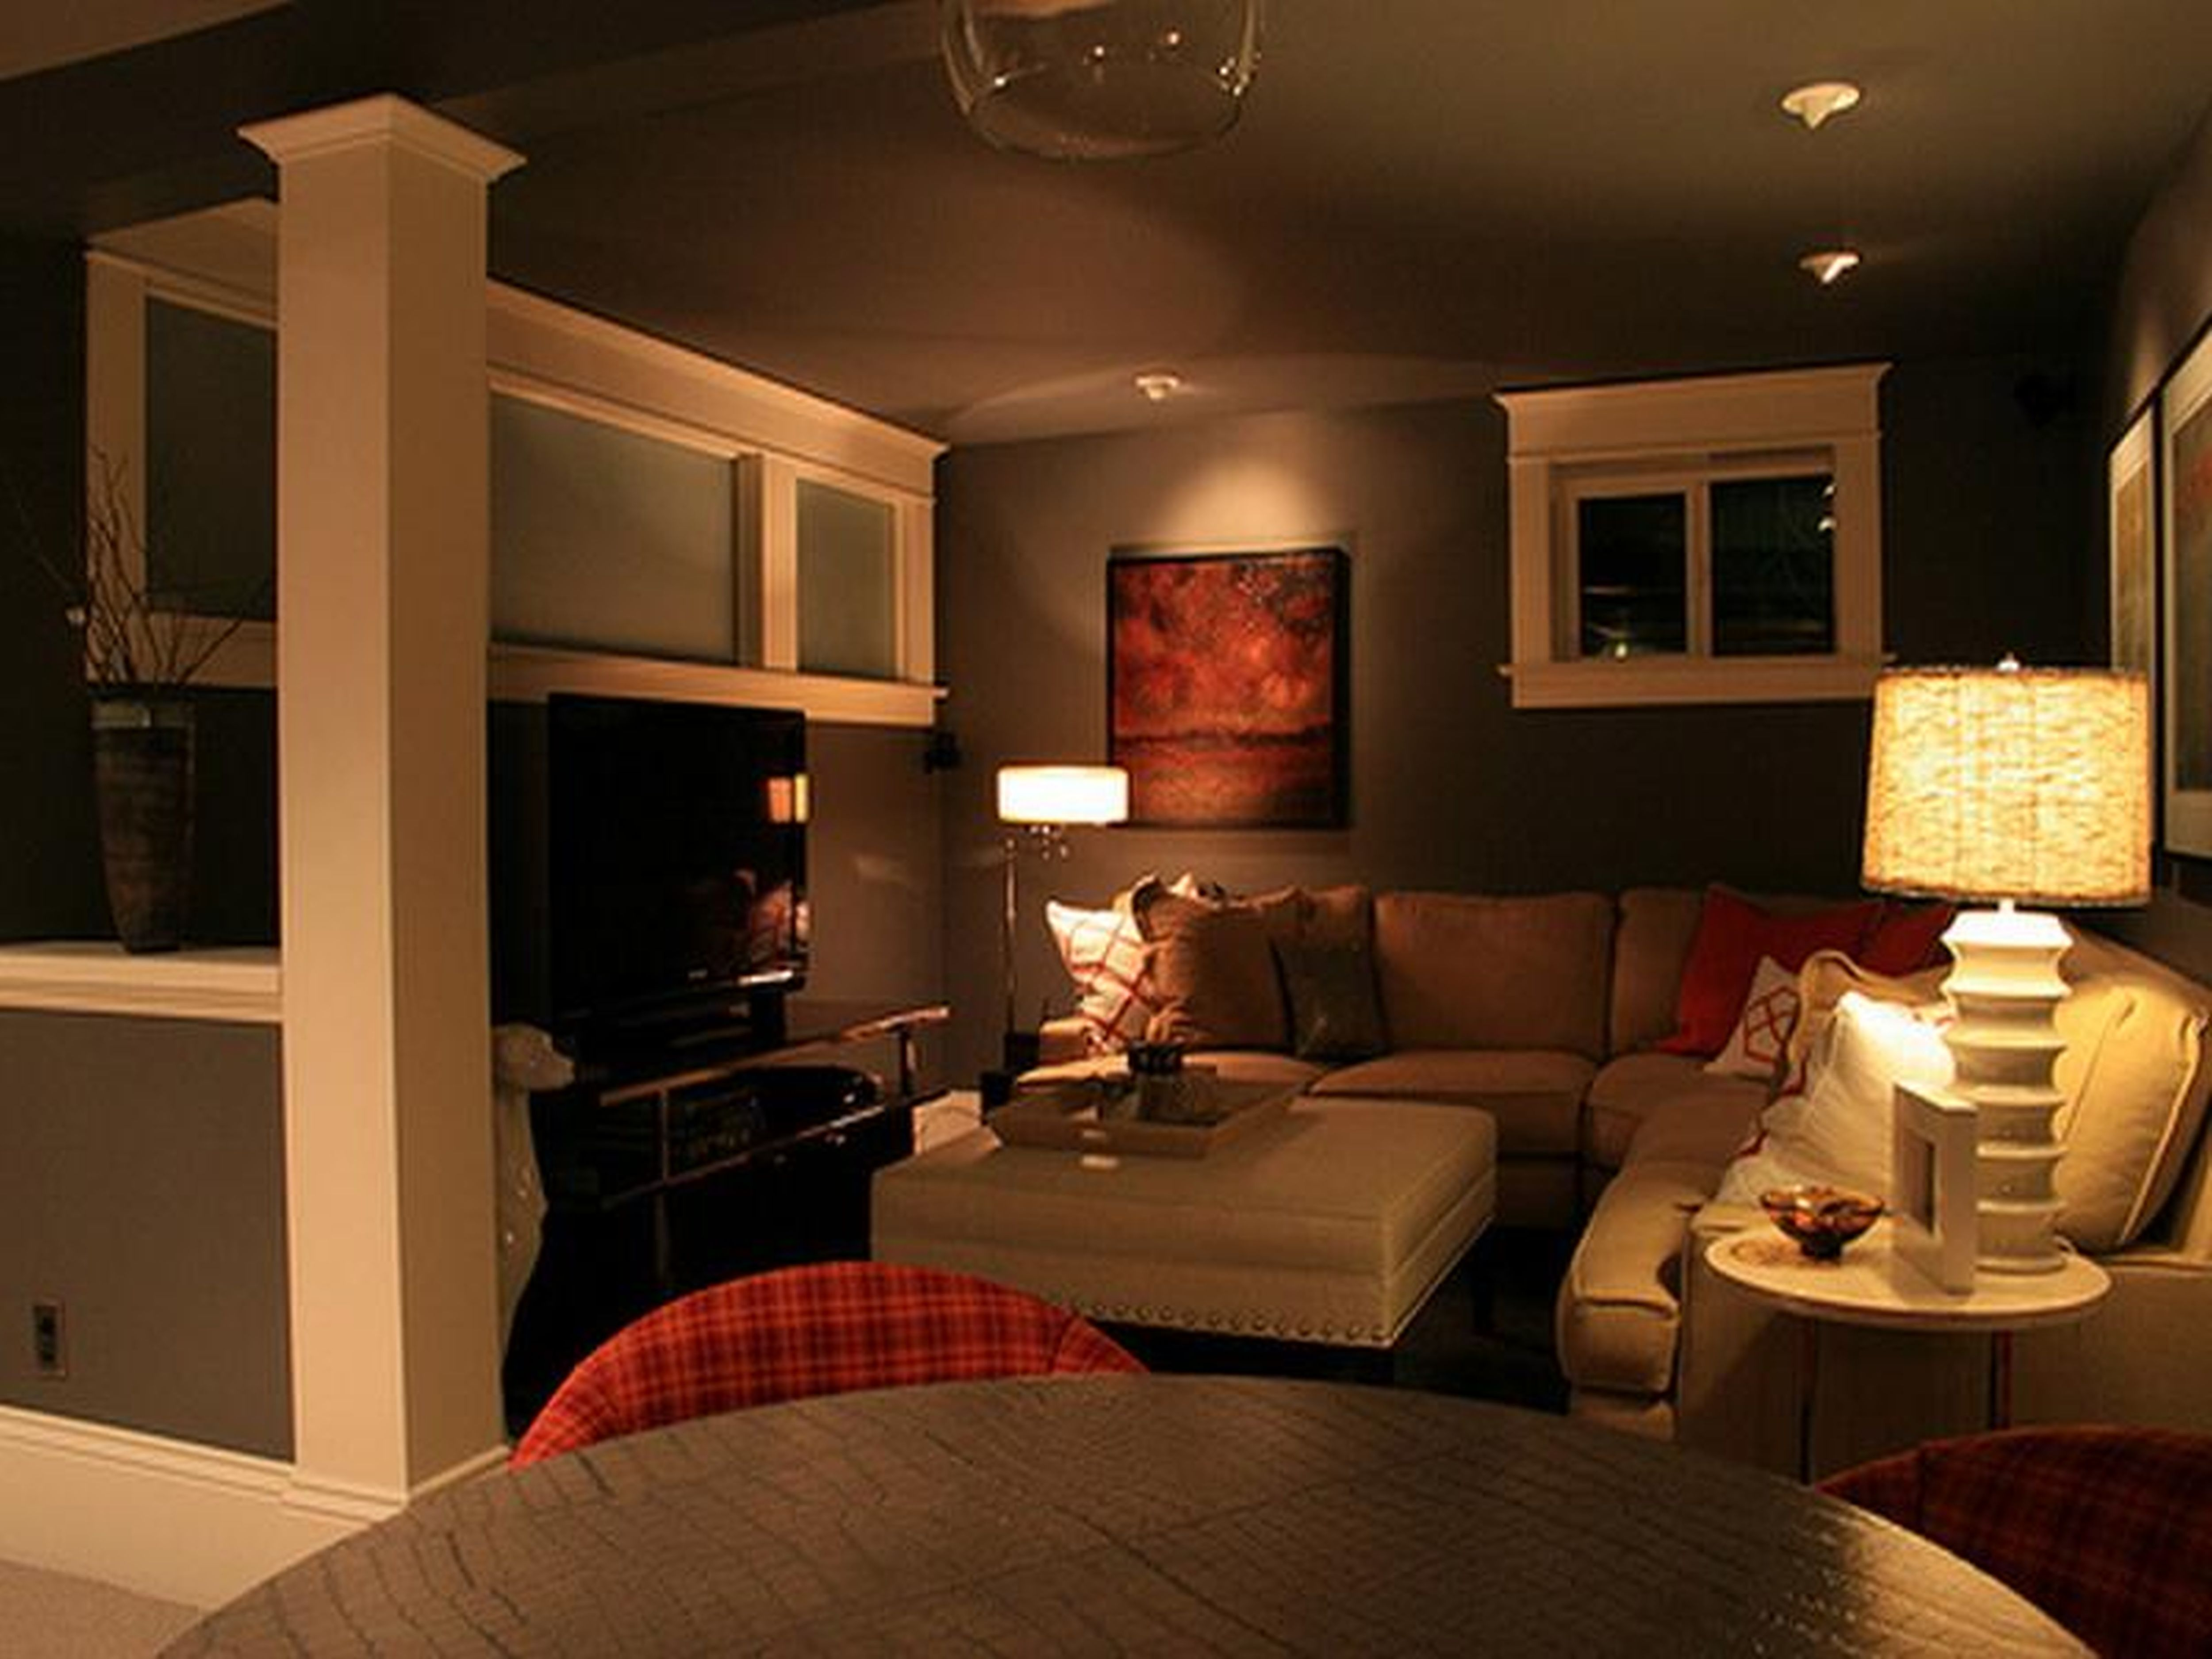 example of a cool basement bedroom ideas home design ideas